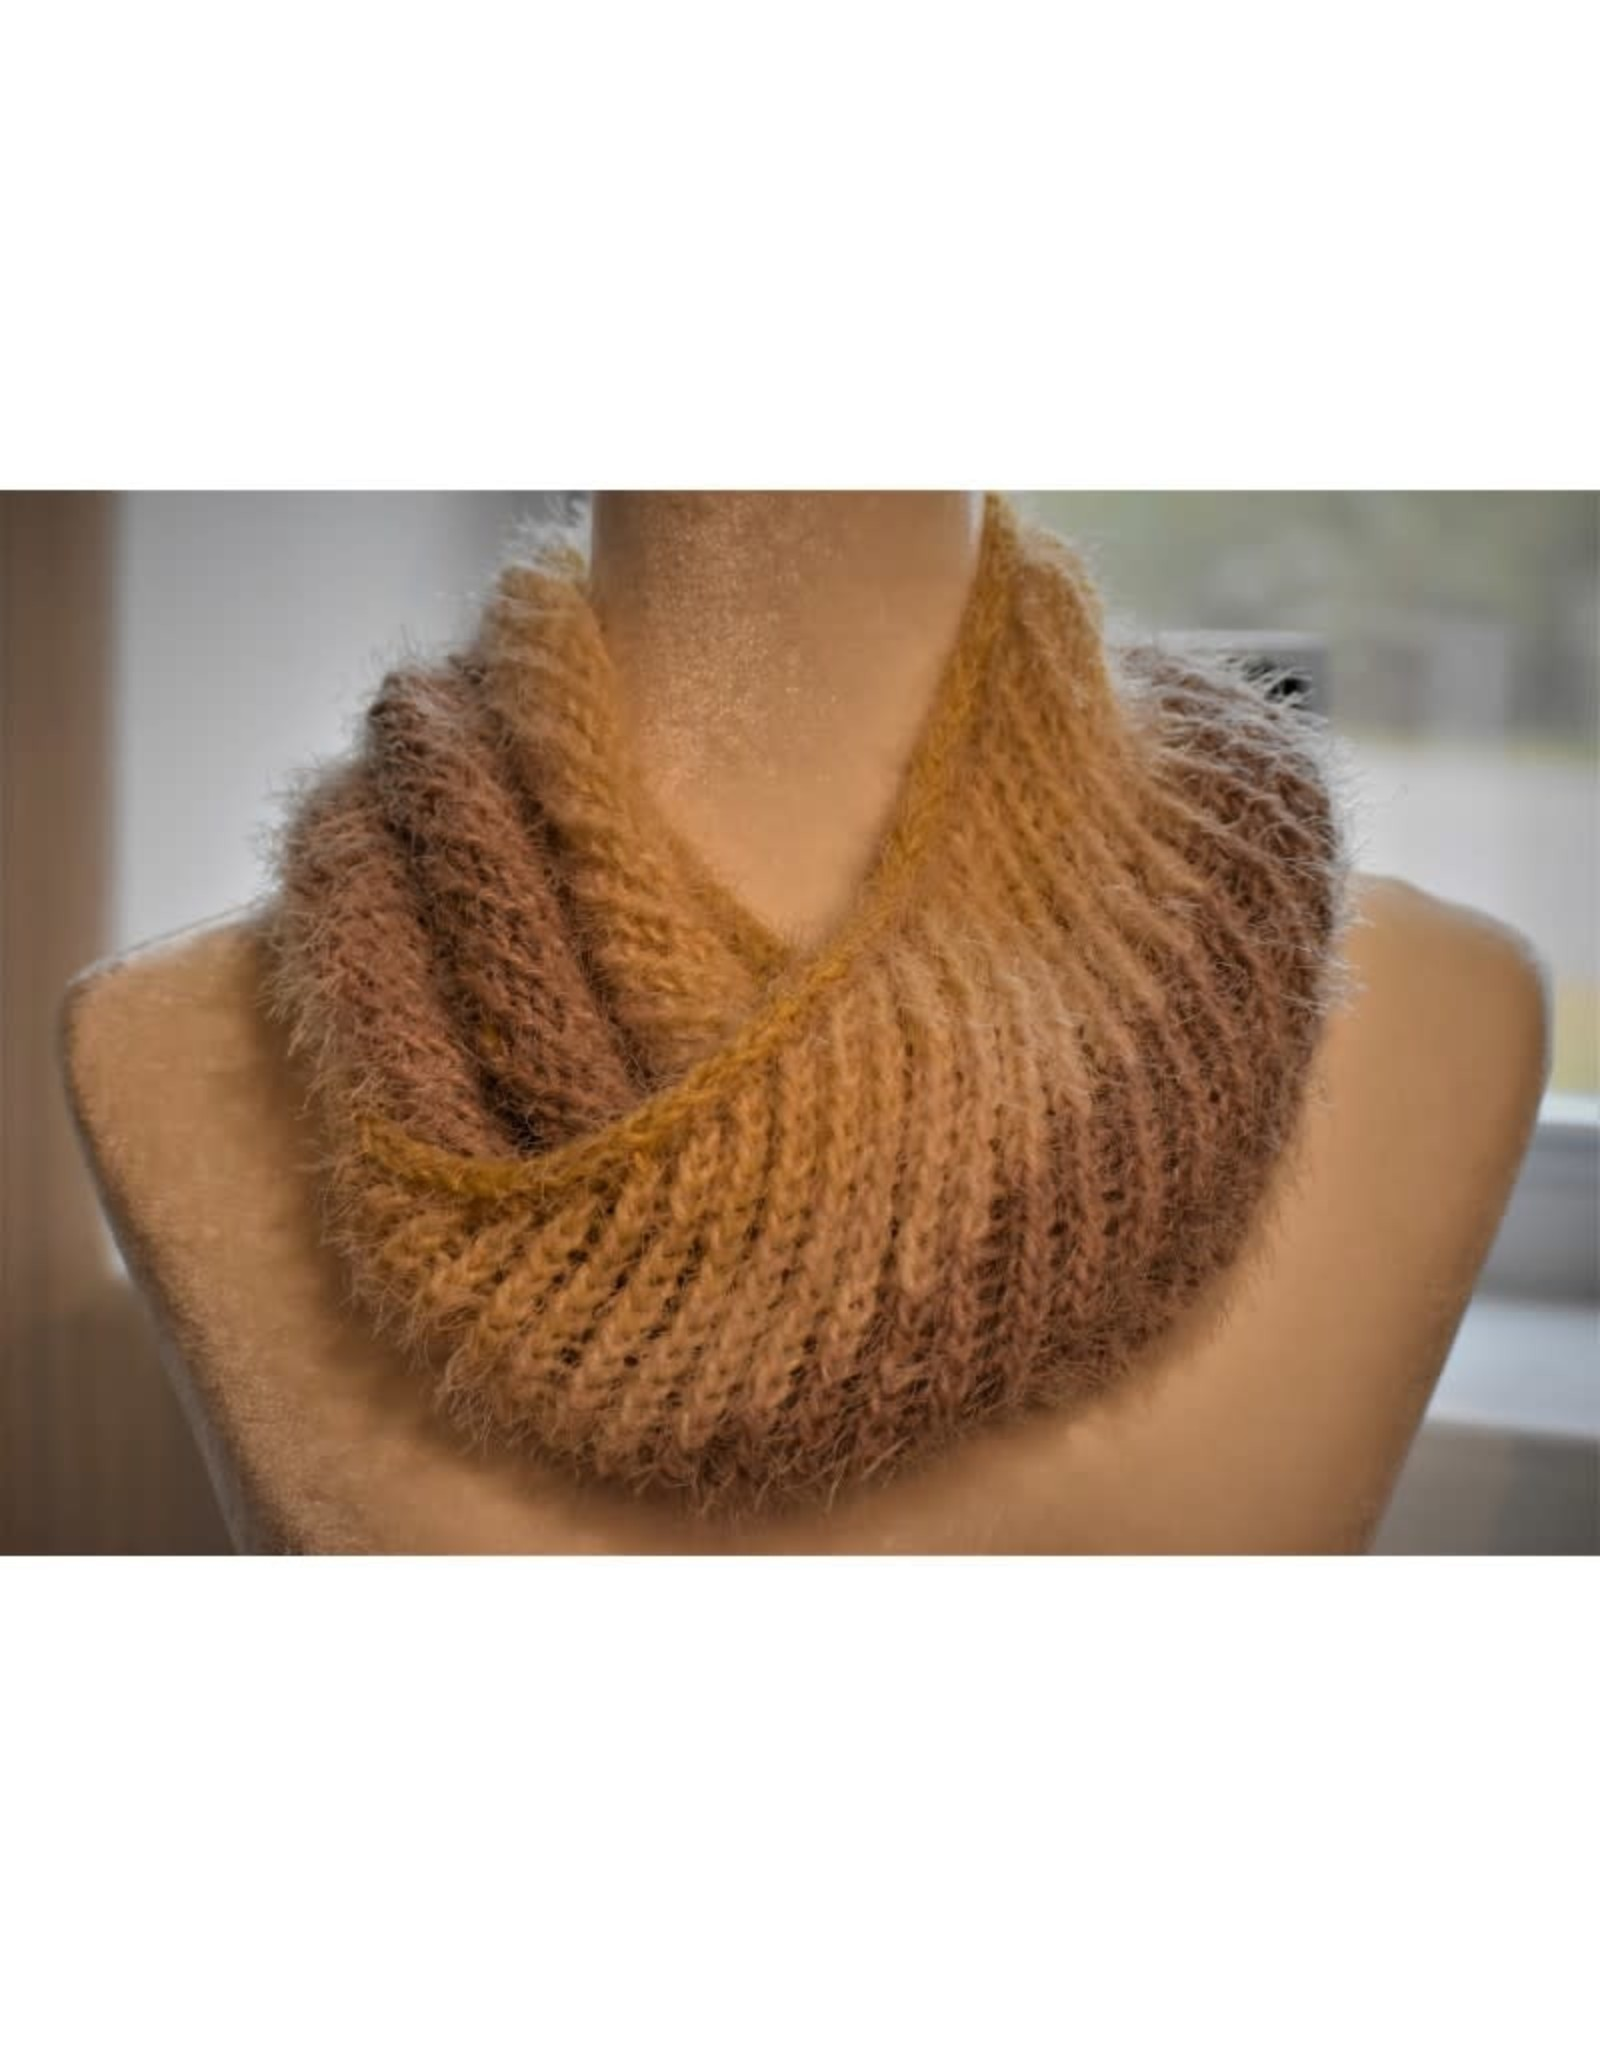 CraftCesi Knit Infinity Scarf  - Yellow & Brown Ombre